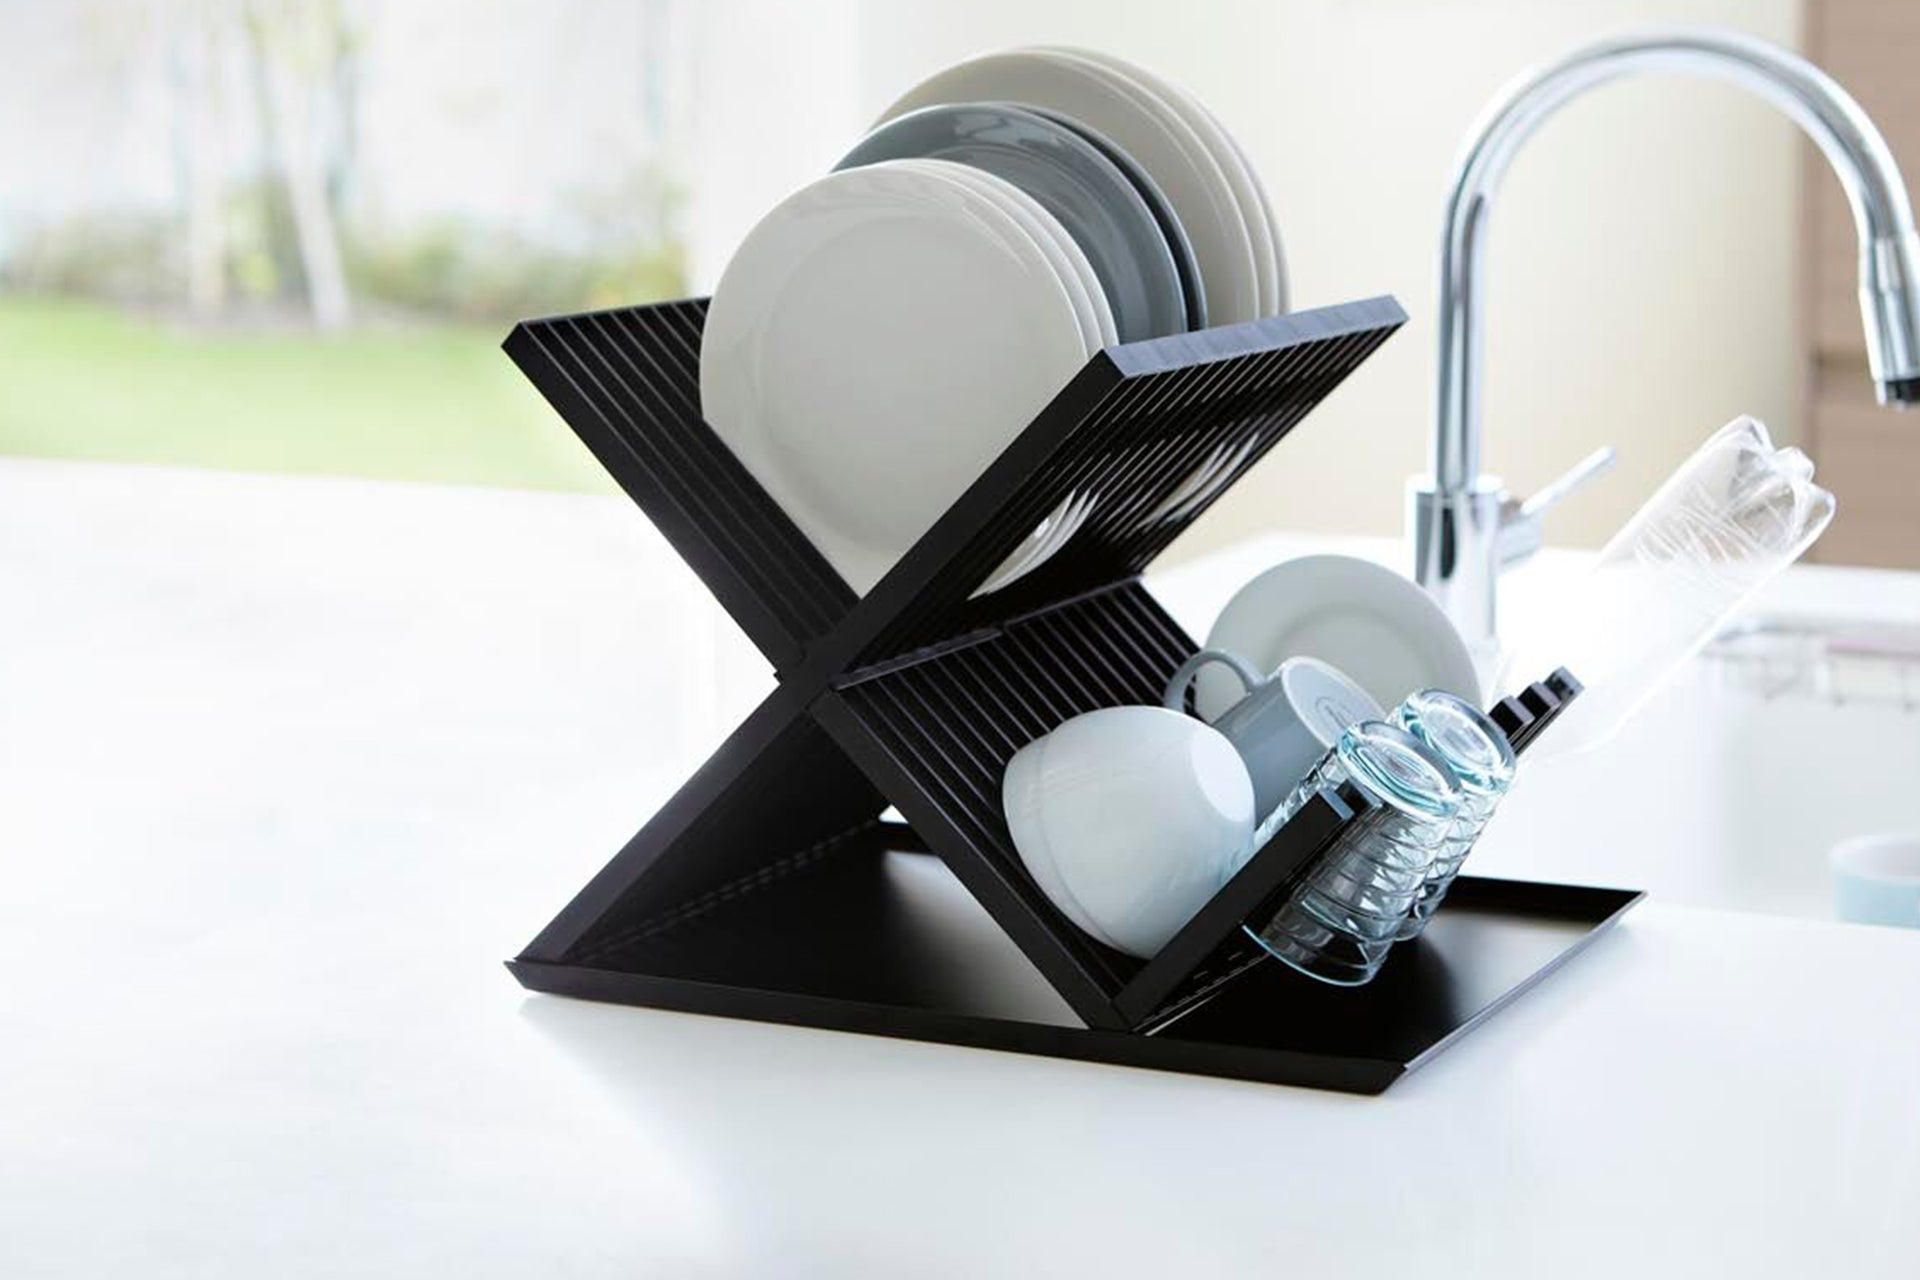 Yamazaki Home Tower X-Shaped Dish Rack holding plates, cups and glasses on the counter